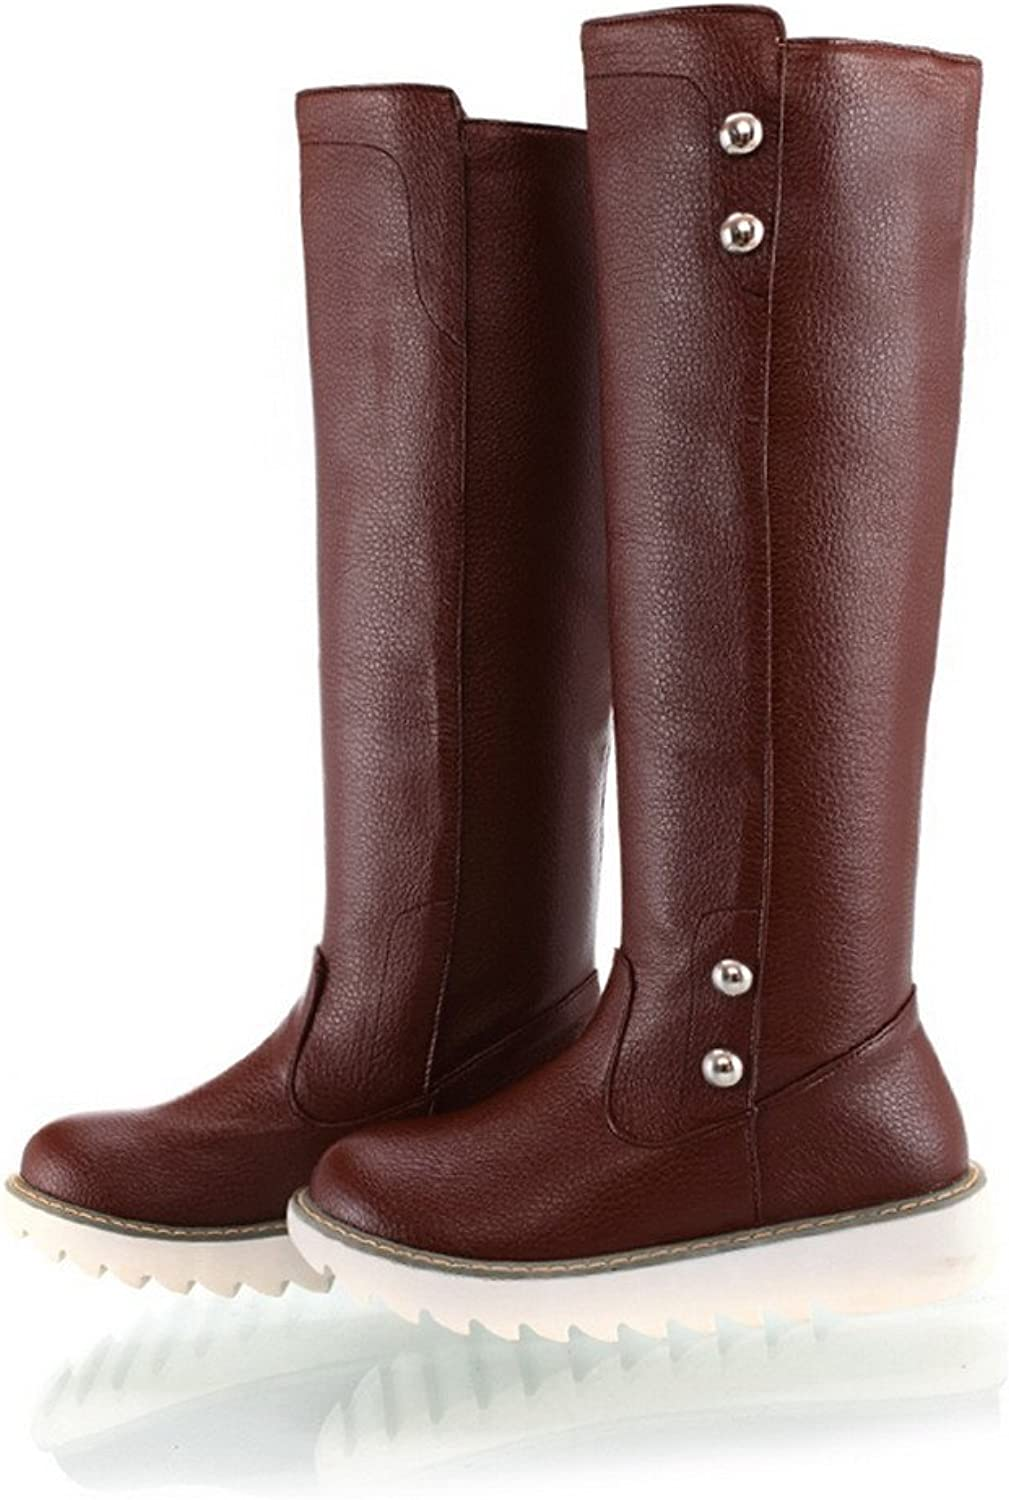 WeenFashion Womens Closed Round Toe Low Heel Cotton PU Soft Material Solid Boots, Brown, 10.5 B(M) US